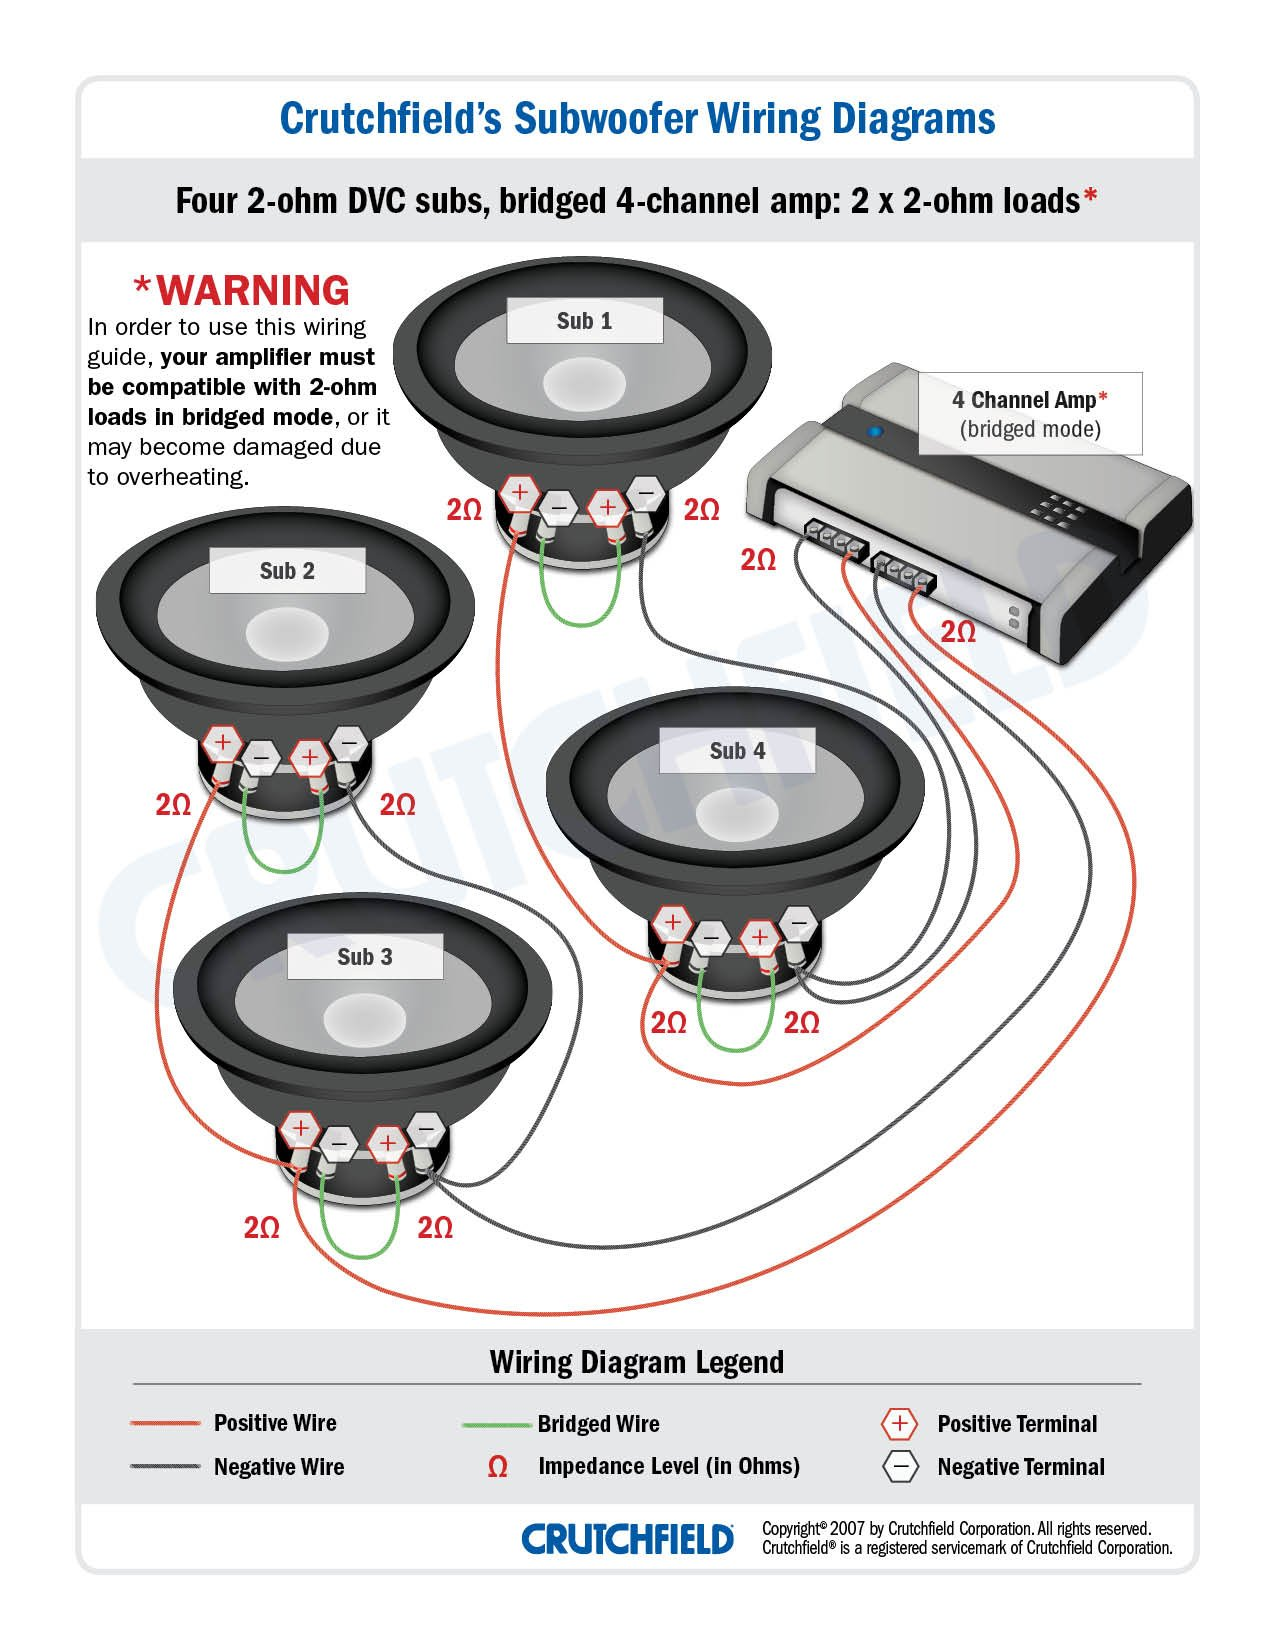 subwoofer wiring diagrams 4 dvc 2 ohm 4ch low imp